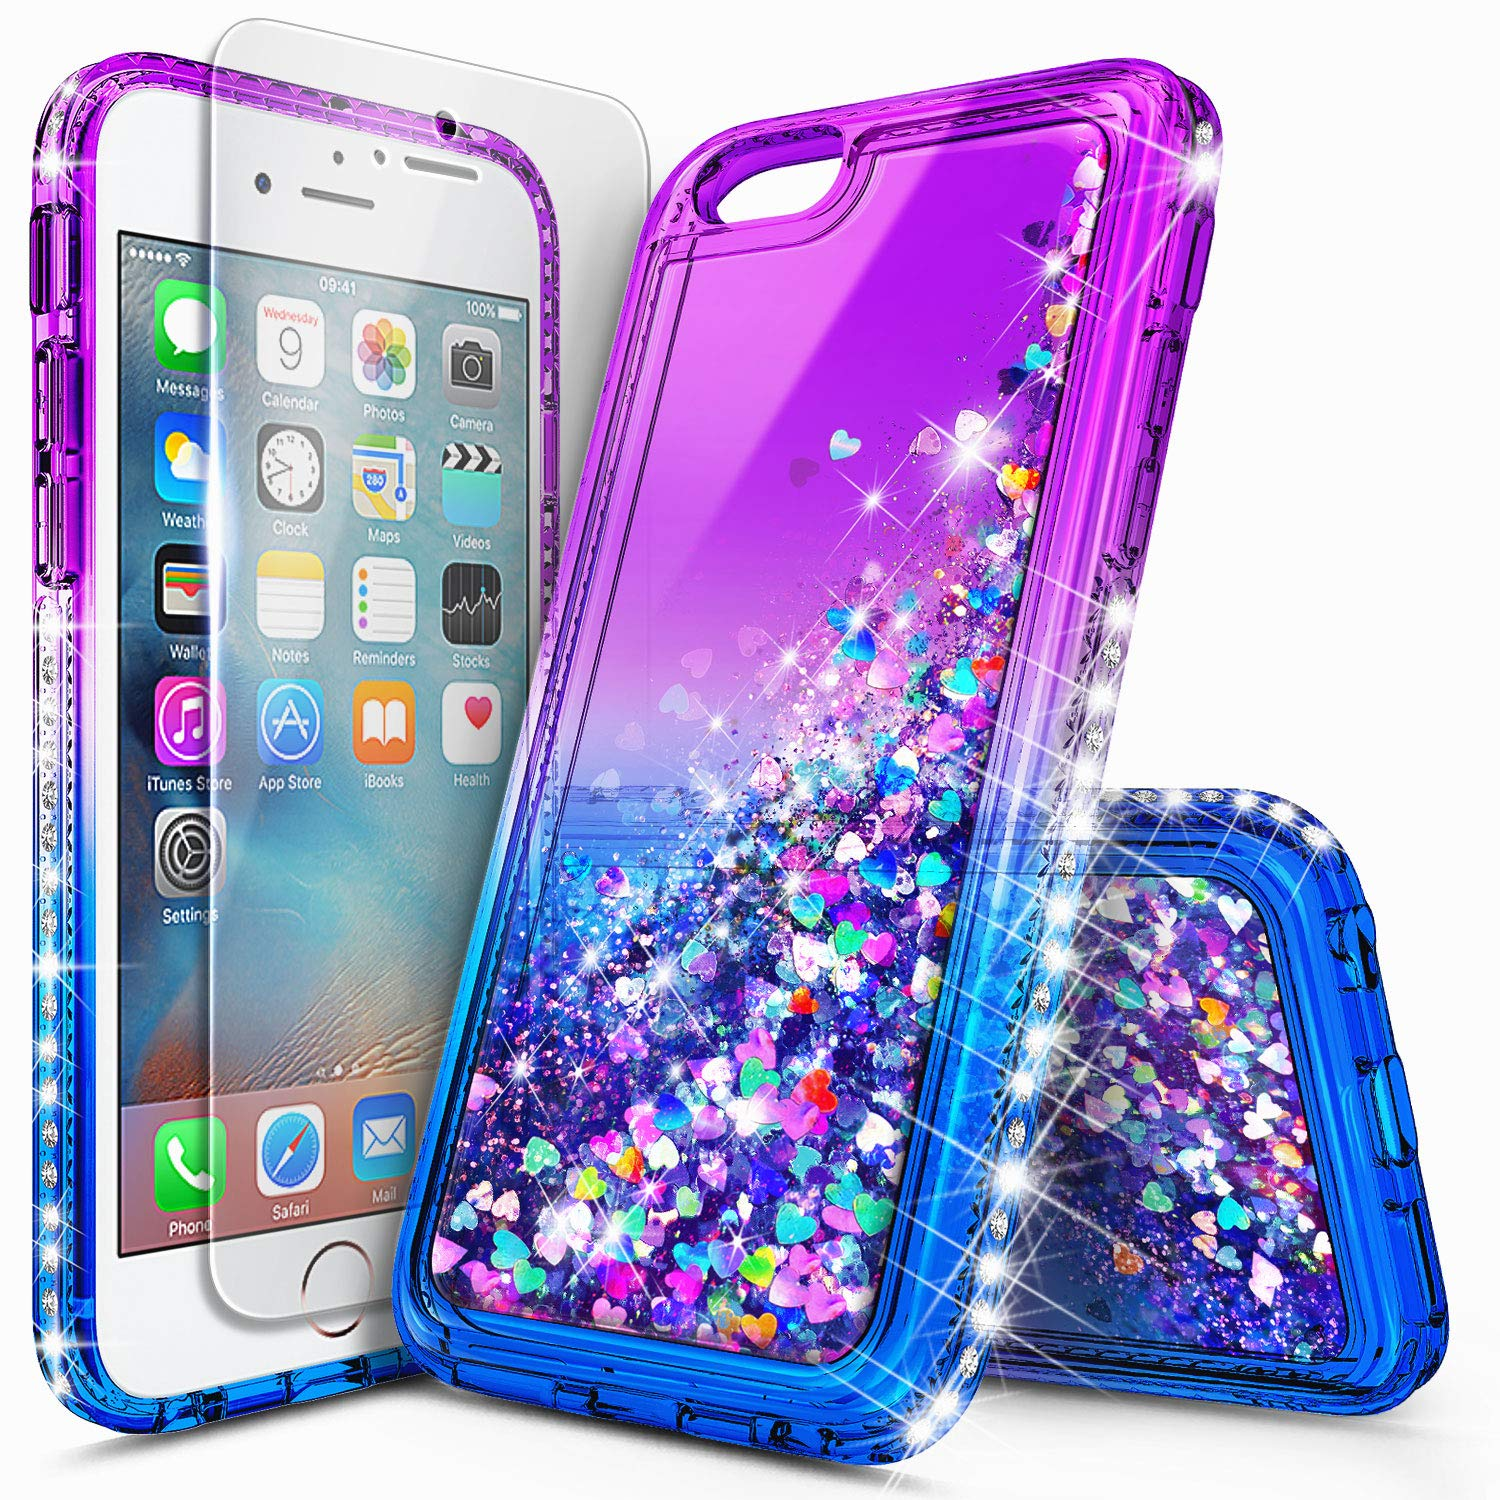 iPhone 5S Case, iPhone SE/iPhone 5 Case w/[Tempered Glass Screen Protector], NageBee Glitter Liquid Quicksand Waterfall Floating Sparkle Bling Diamond Women Girls Kids Cute Durable Case -Purple/Blue